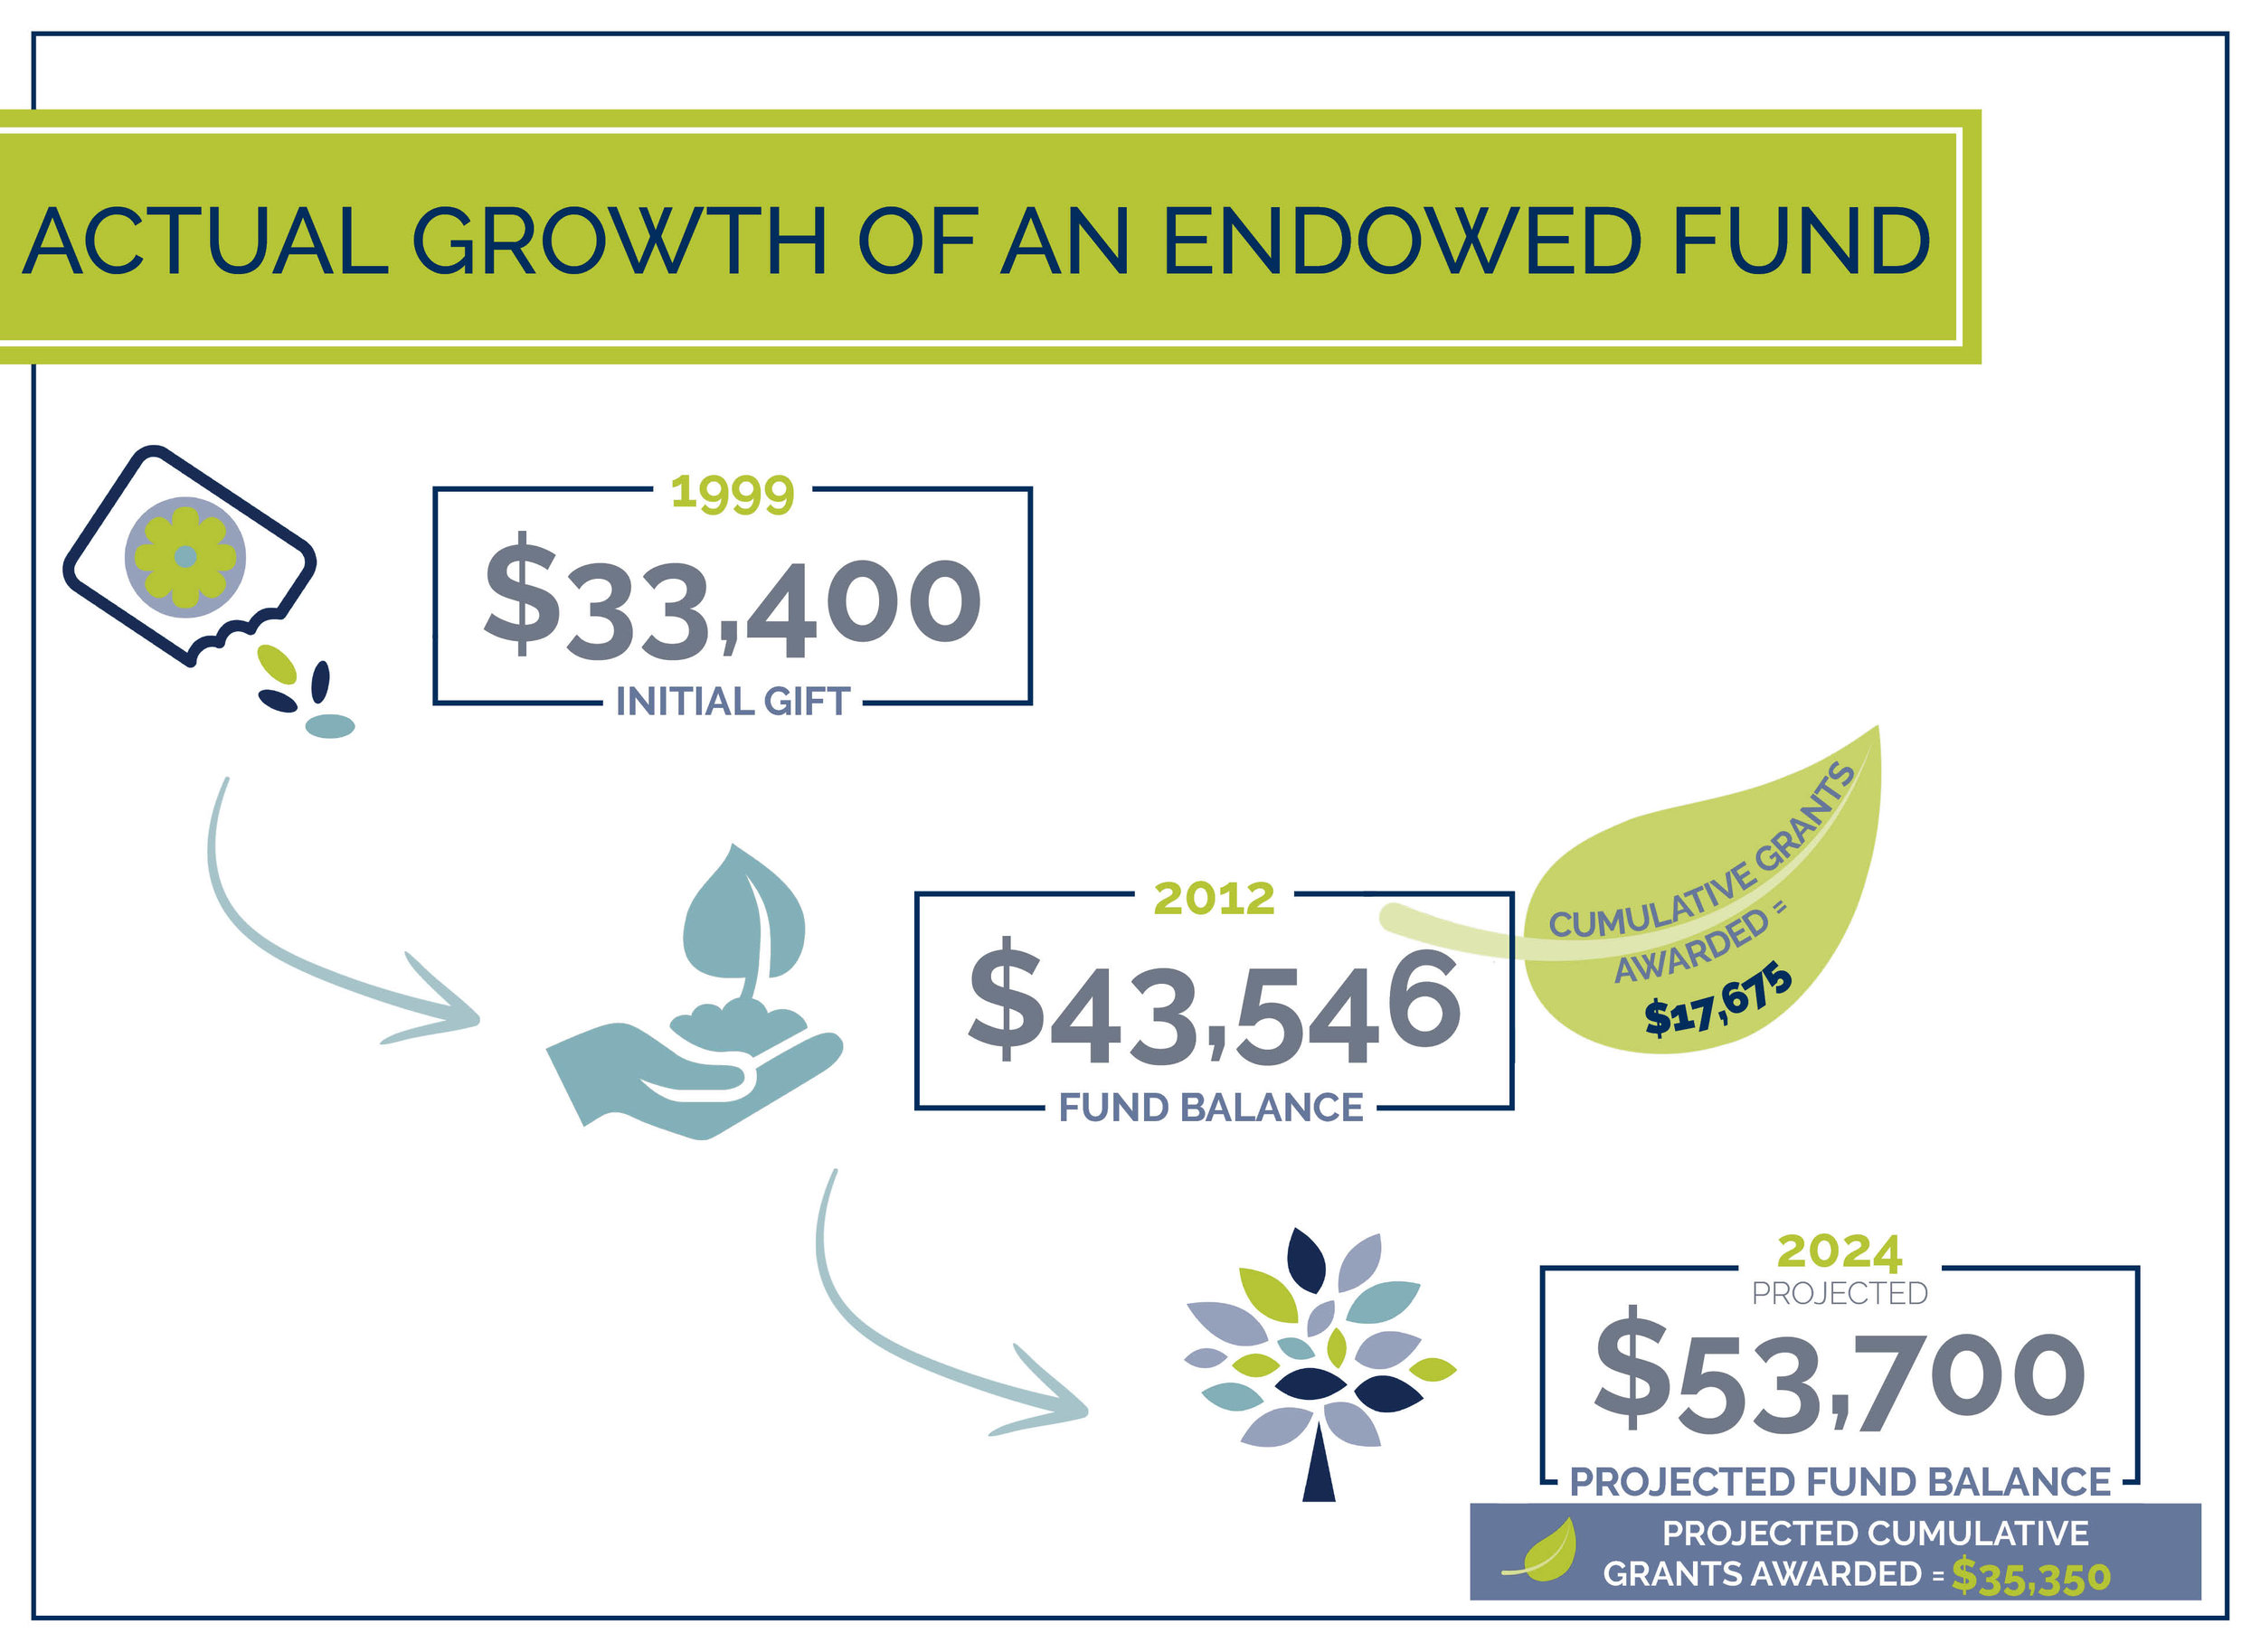 power of endowed fund graphic for website- m fund - main page.jpg